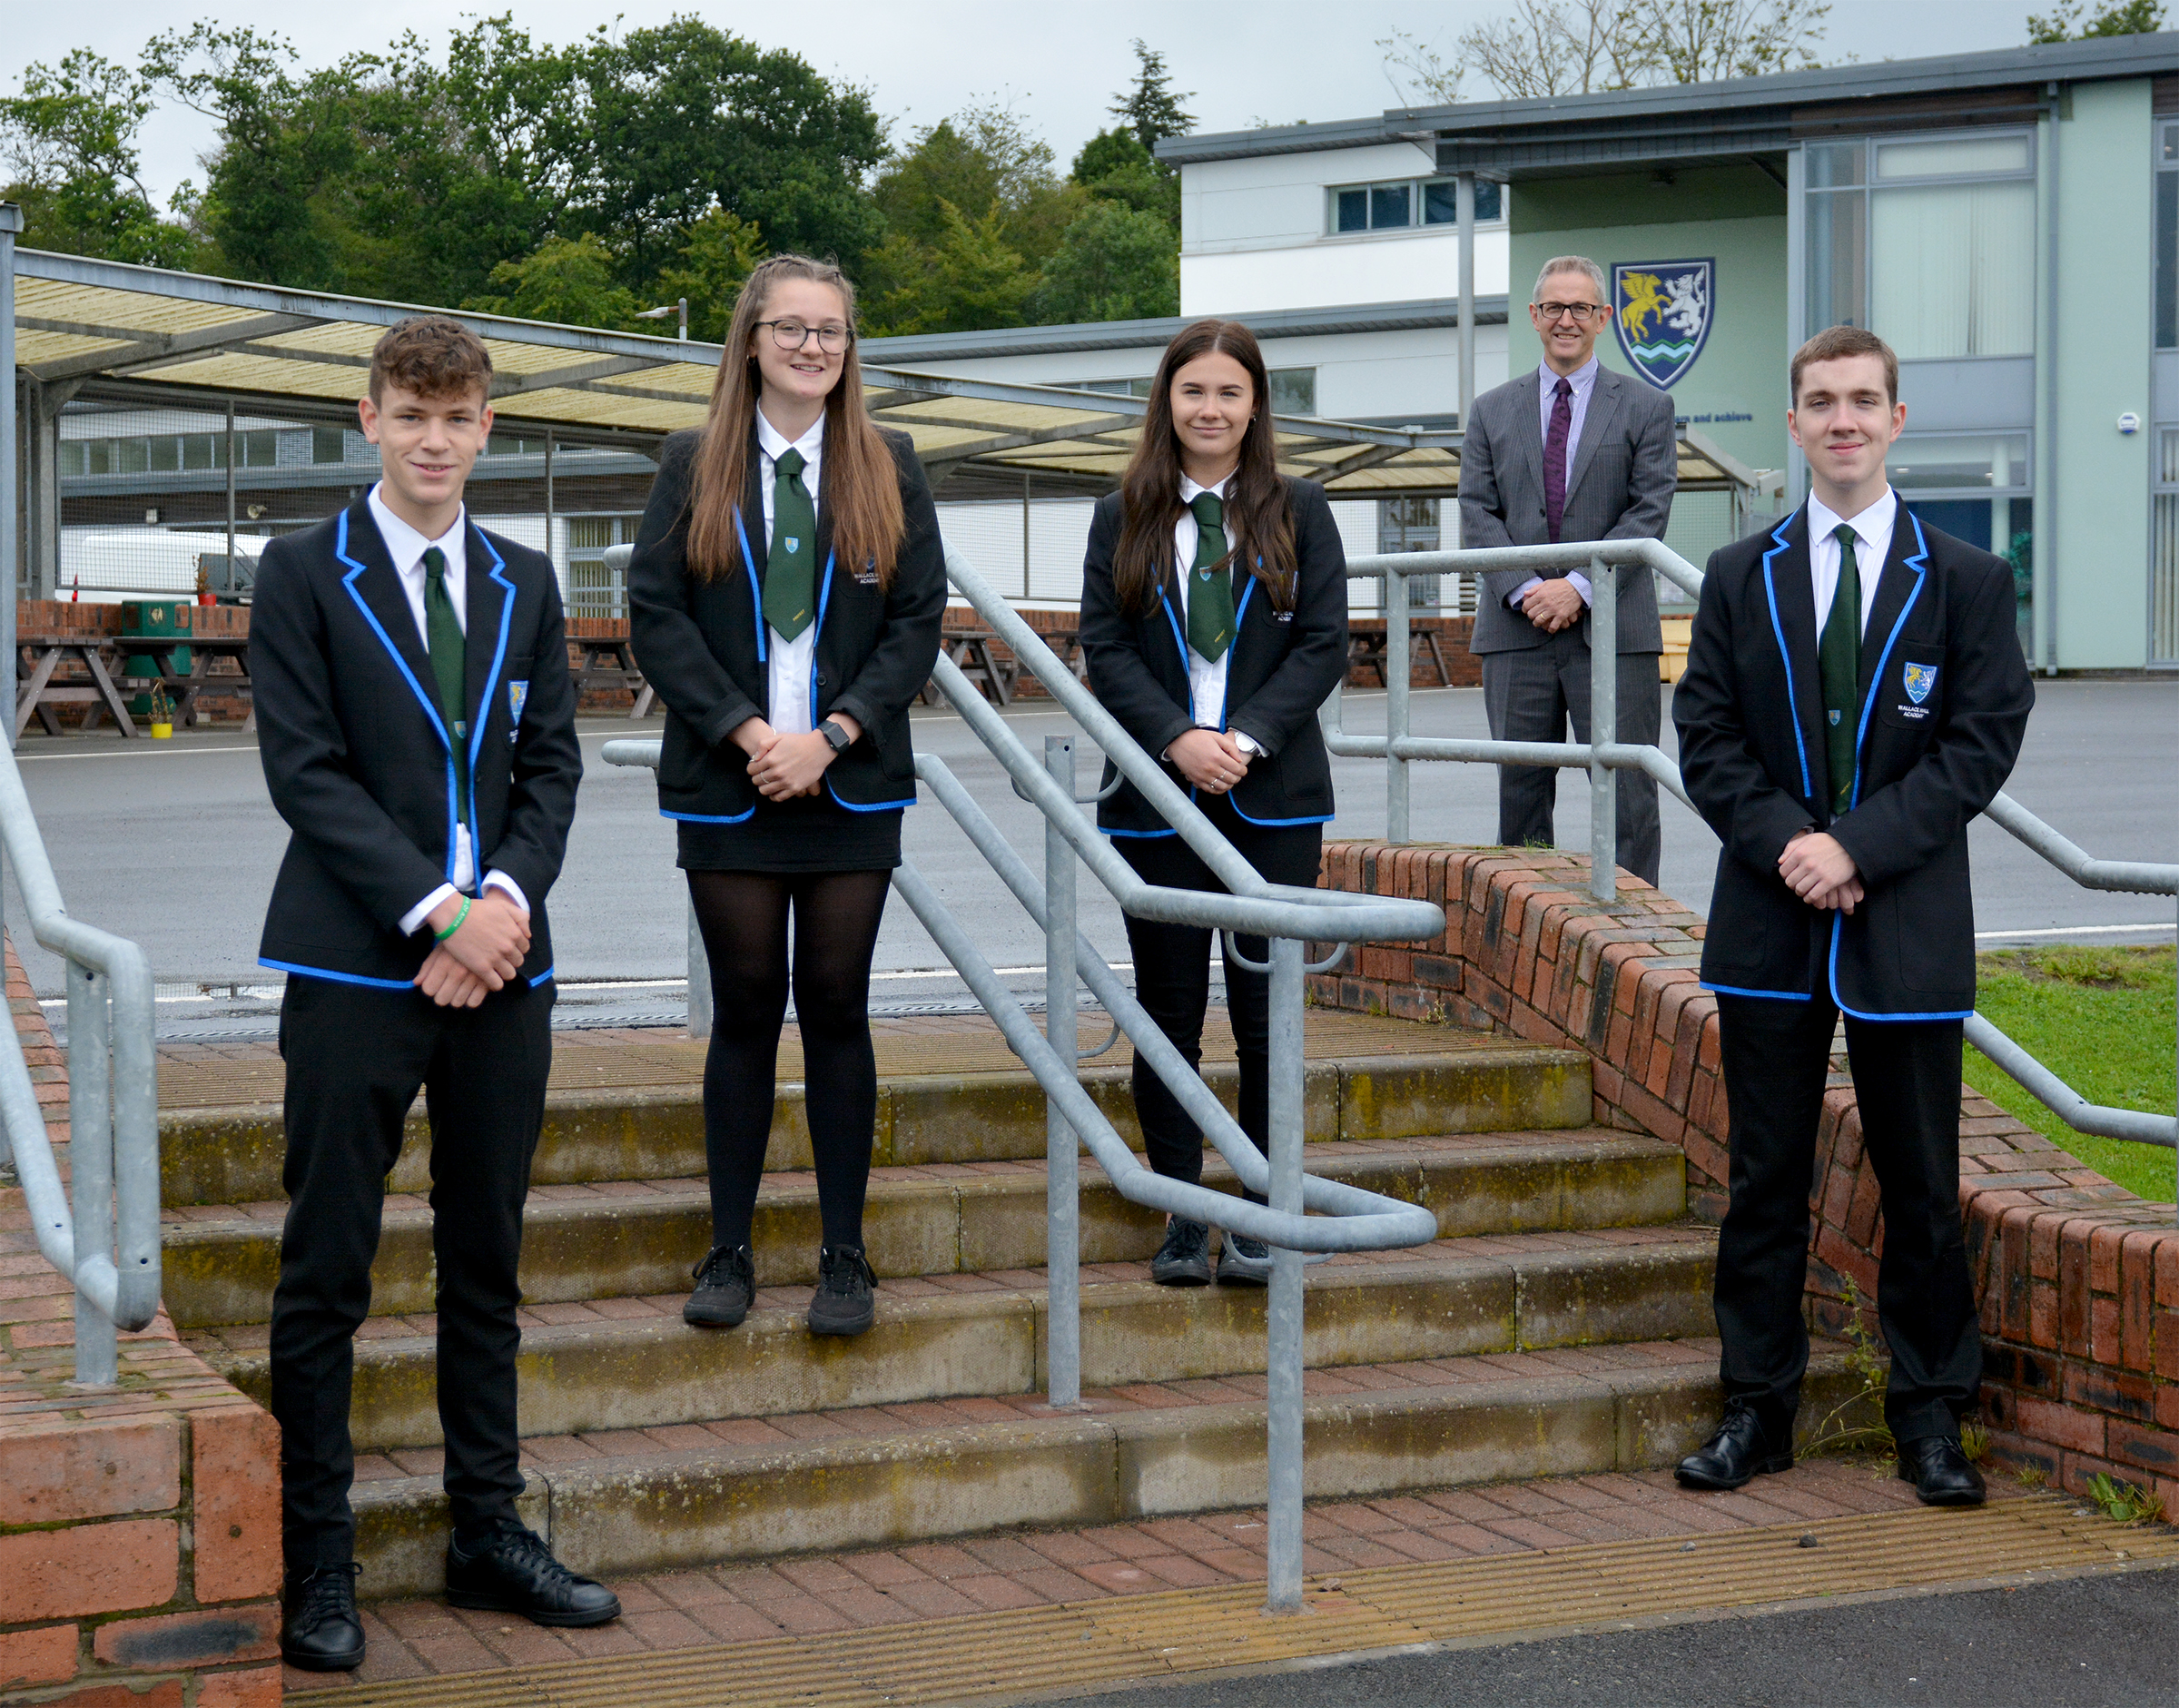 Wallace Hall S6 Office Bearers with Mr G